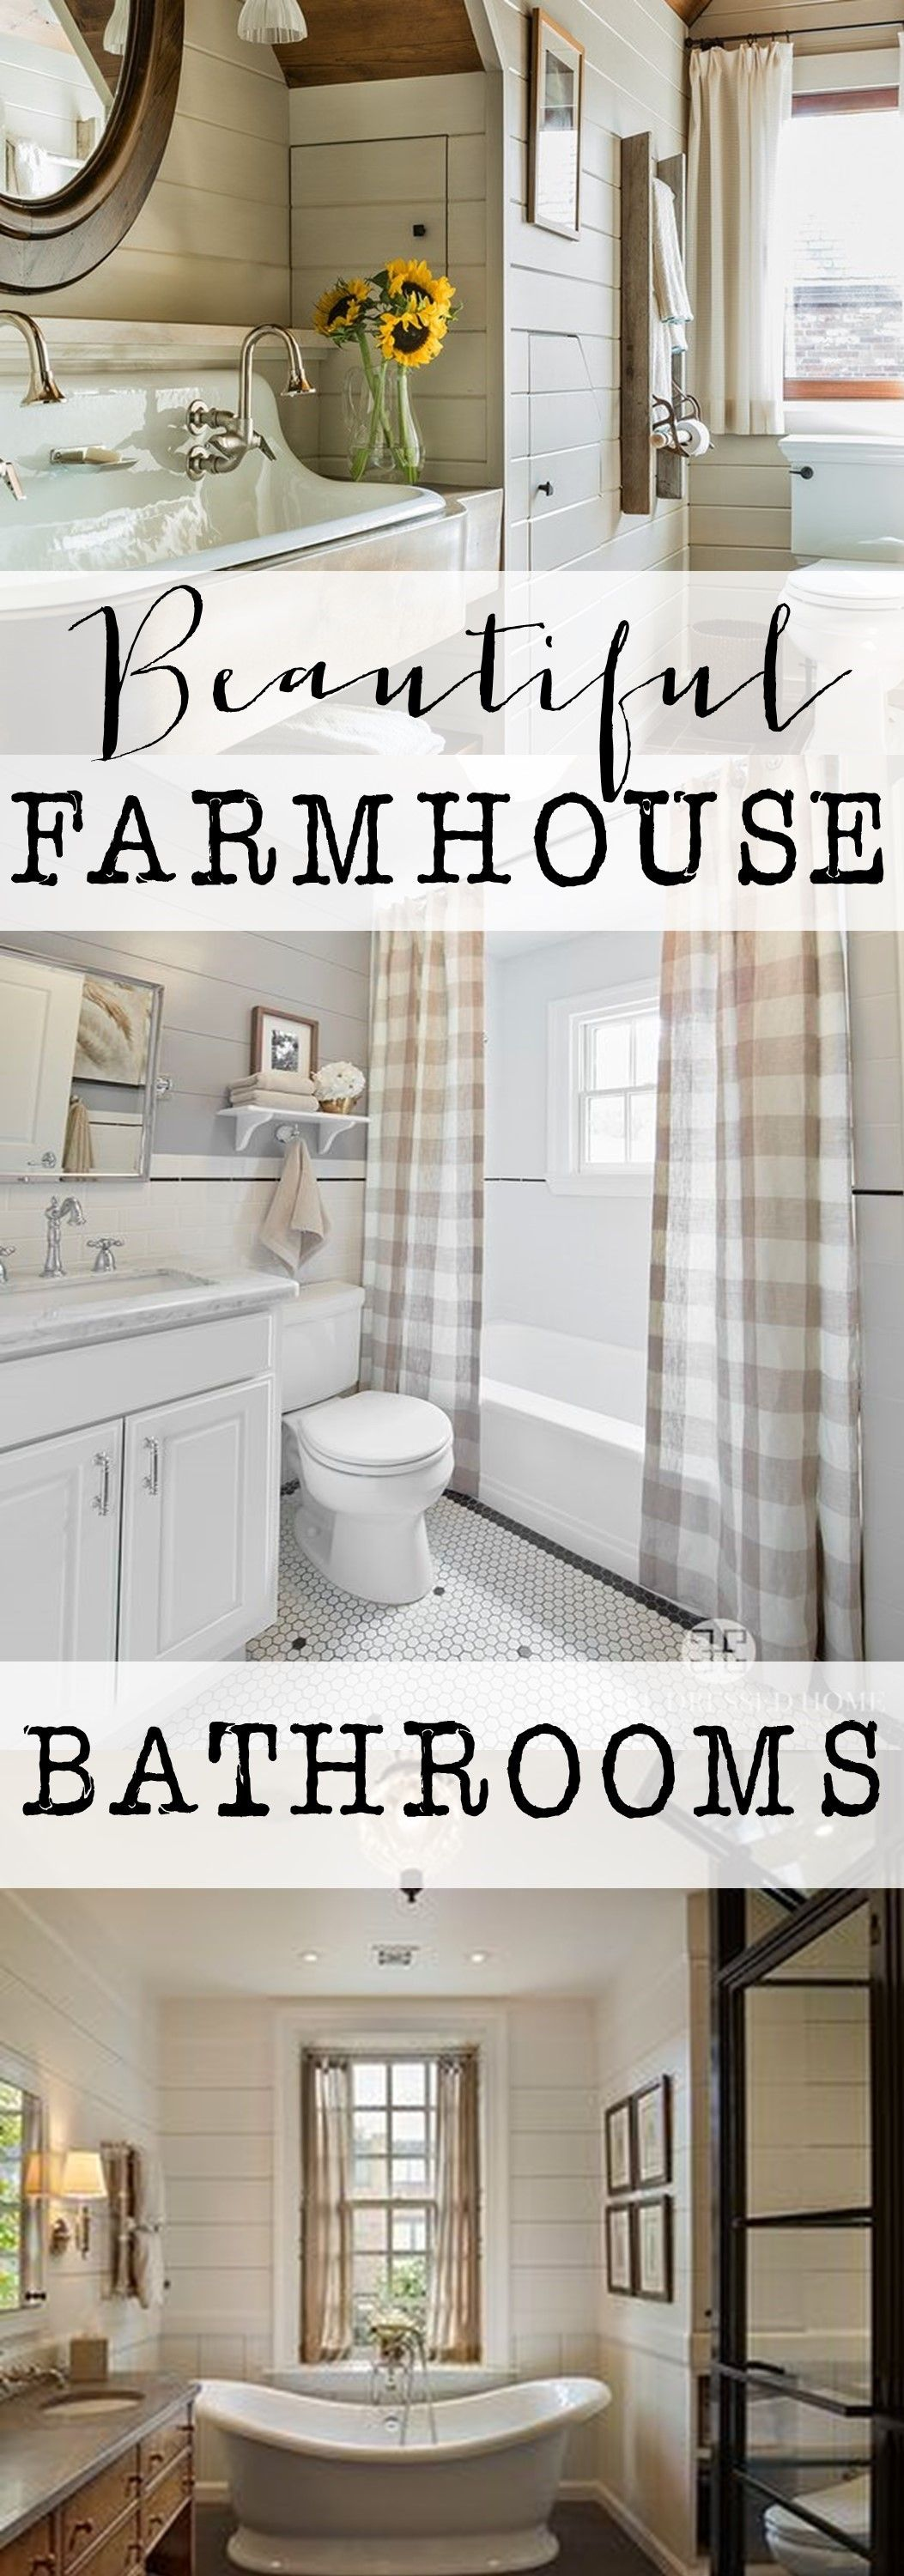 If You Love Farmhouse Shiplap Vintage Farm Sinks Tile